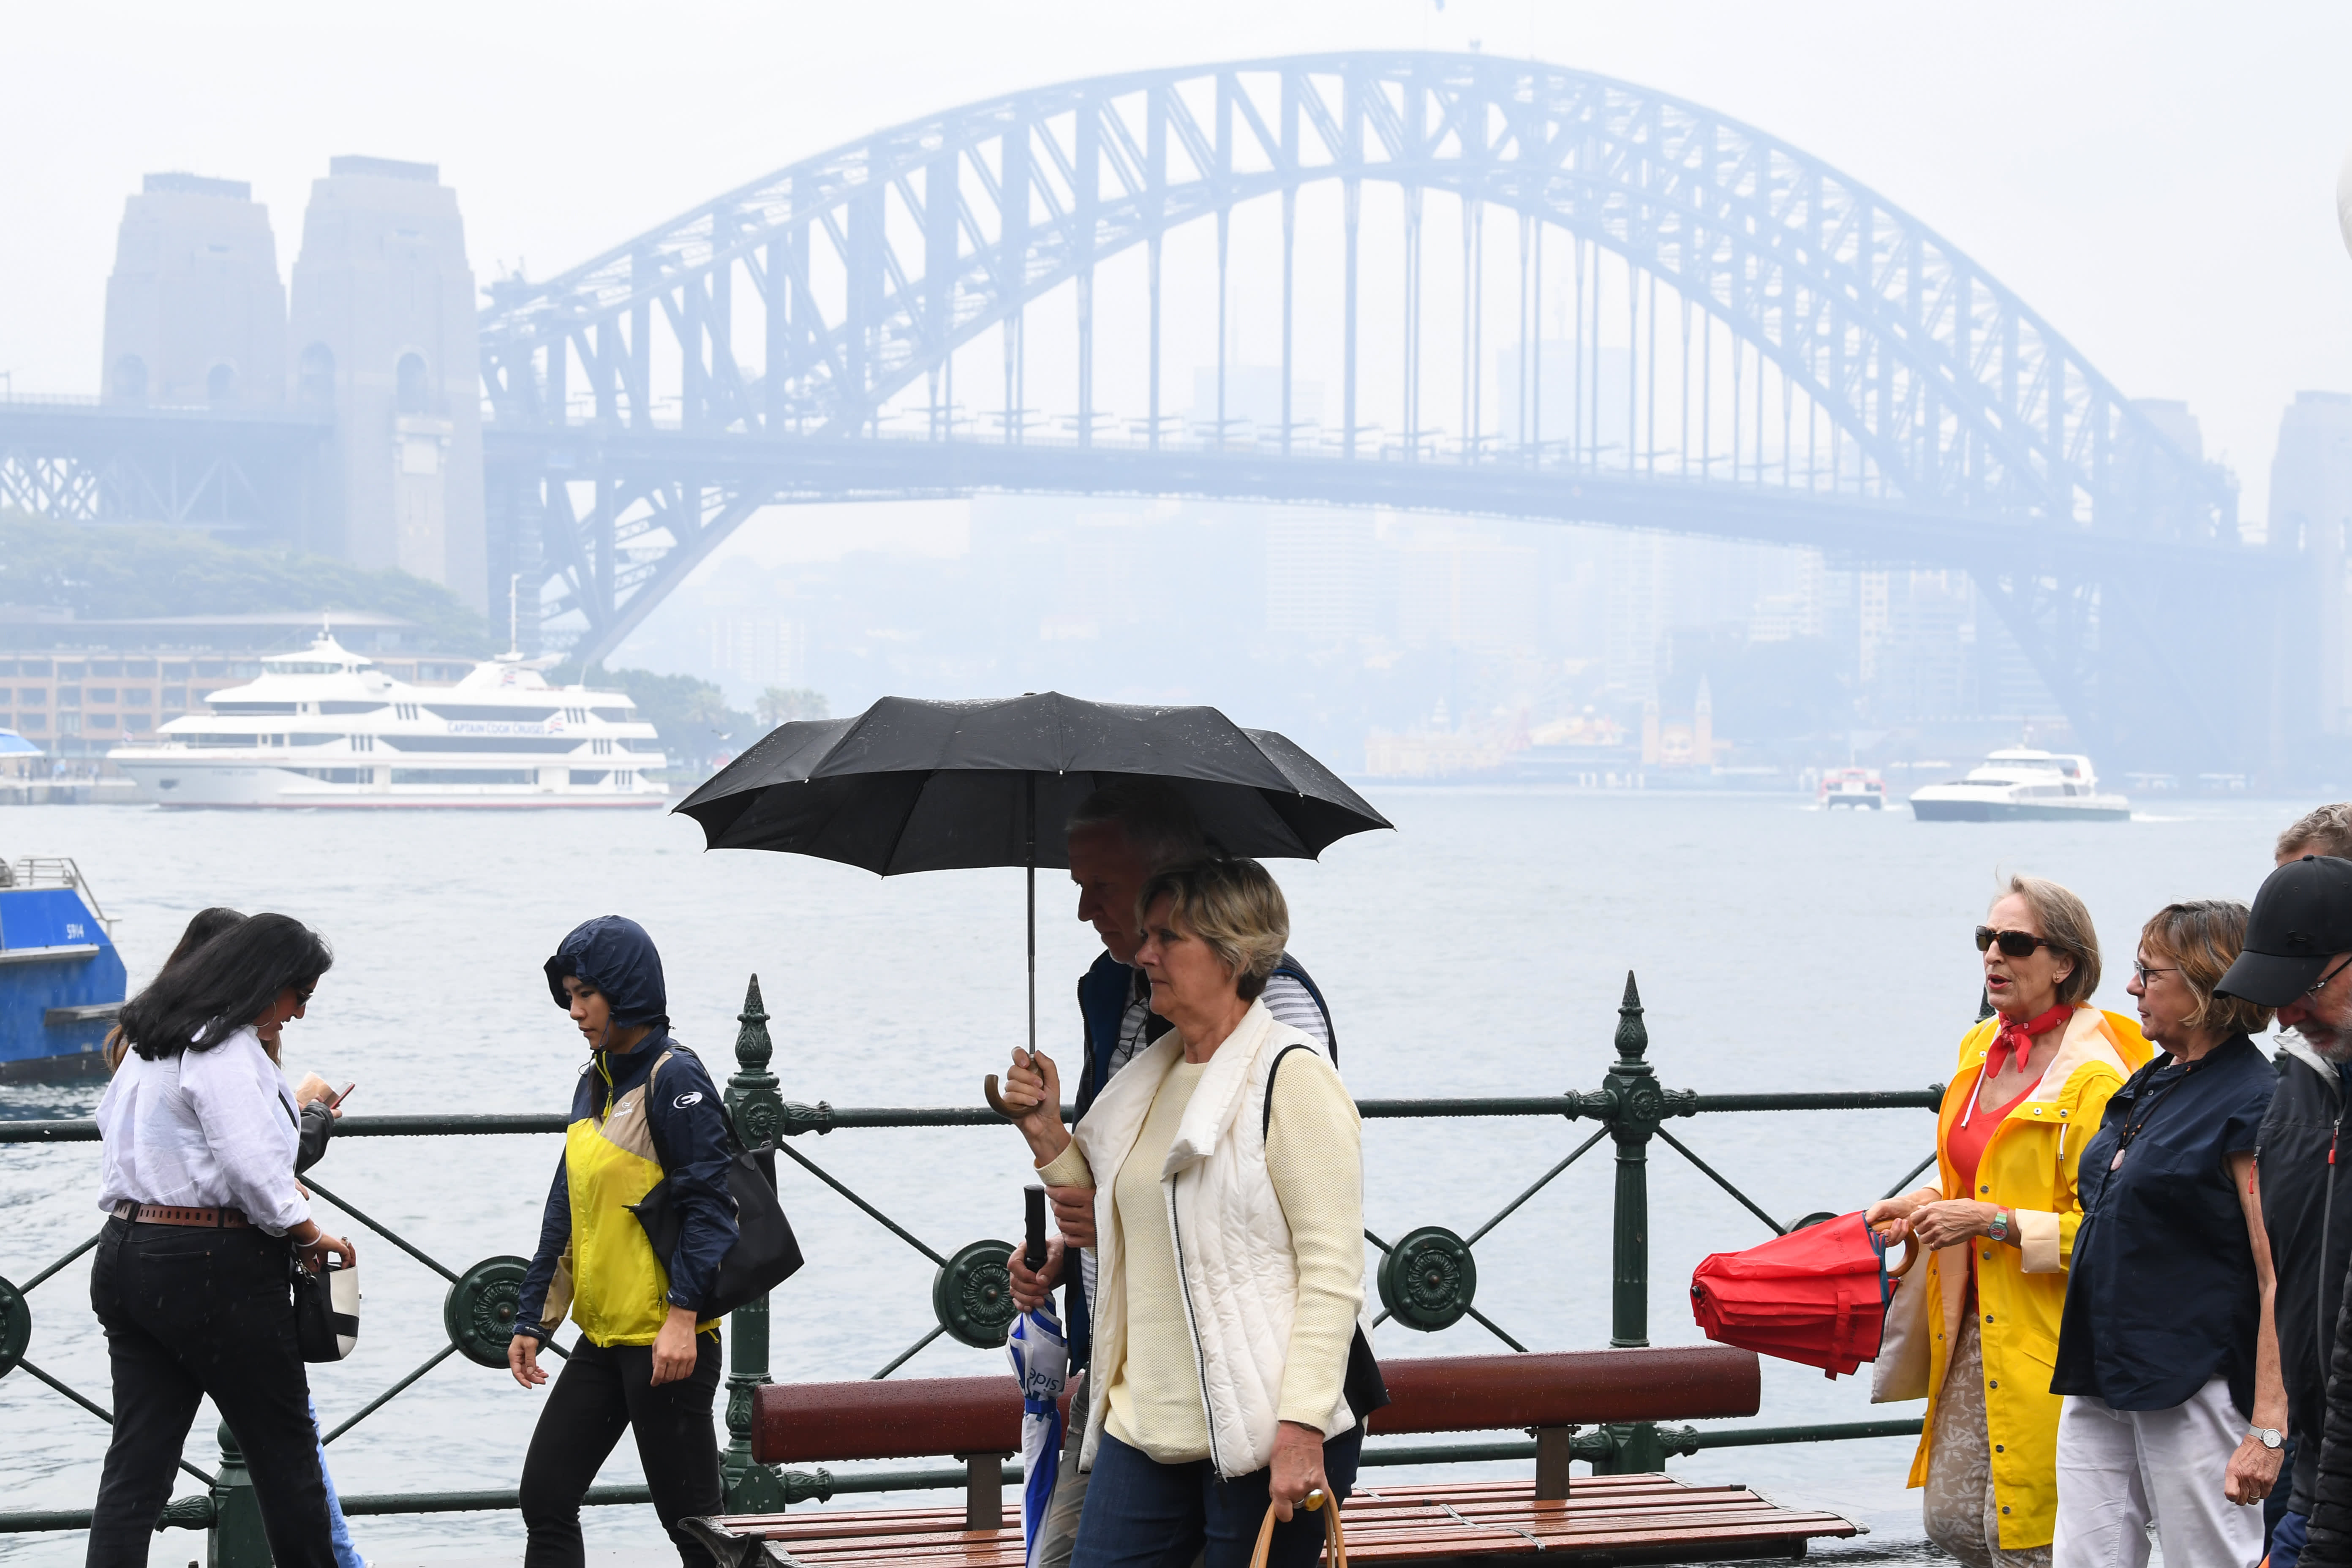 Most Australian executives say climate change will damage companies, survey finds